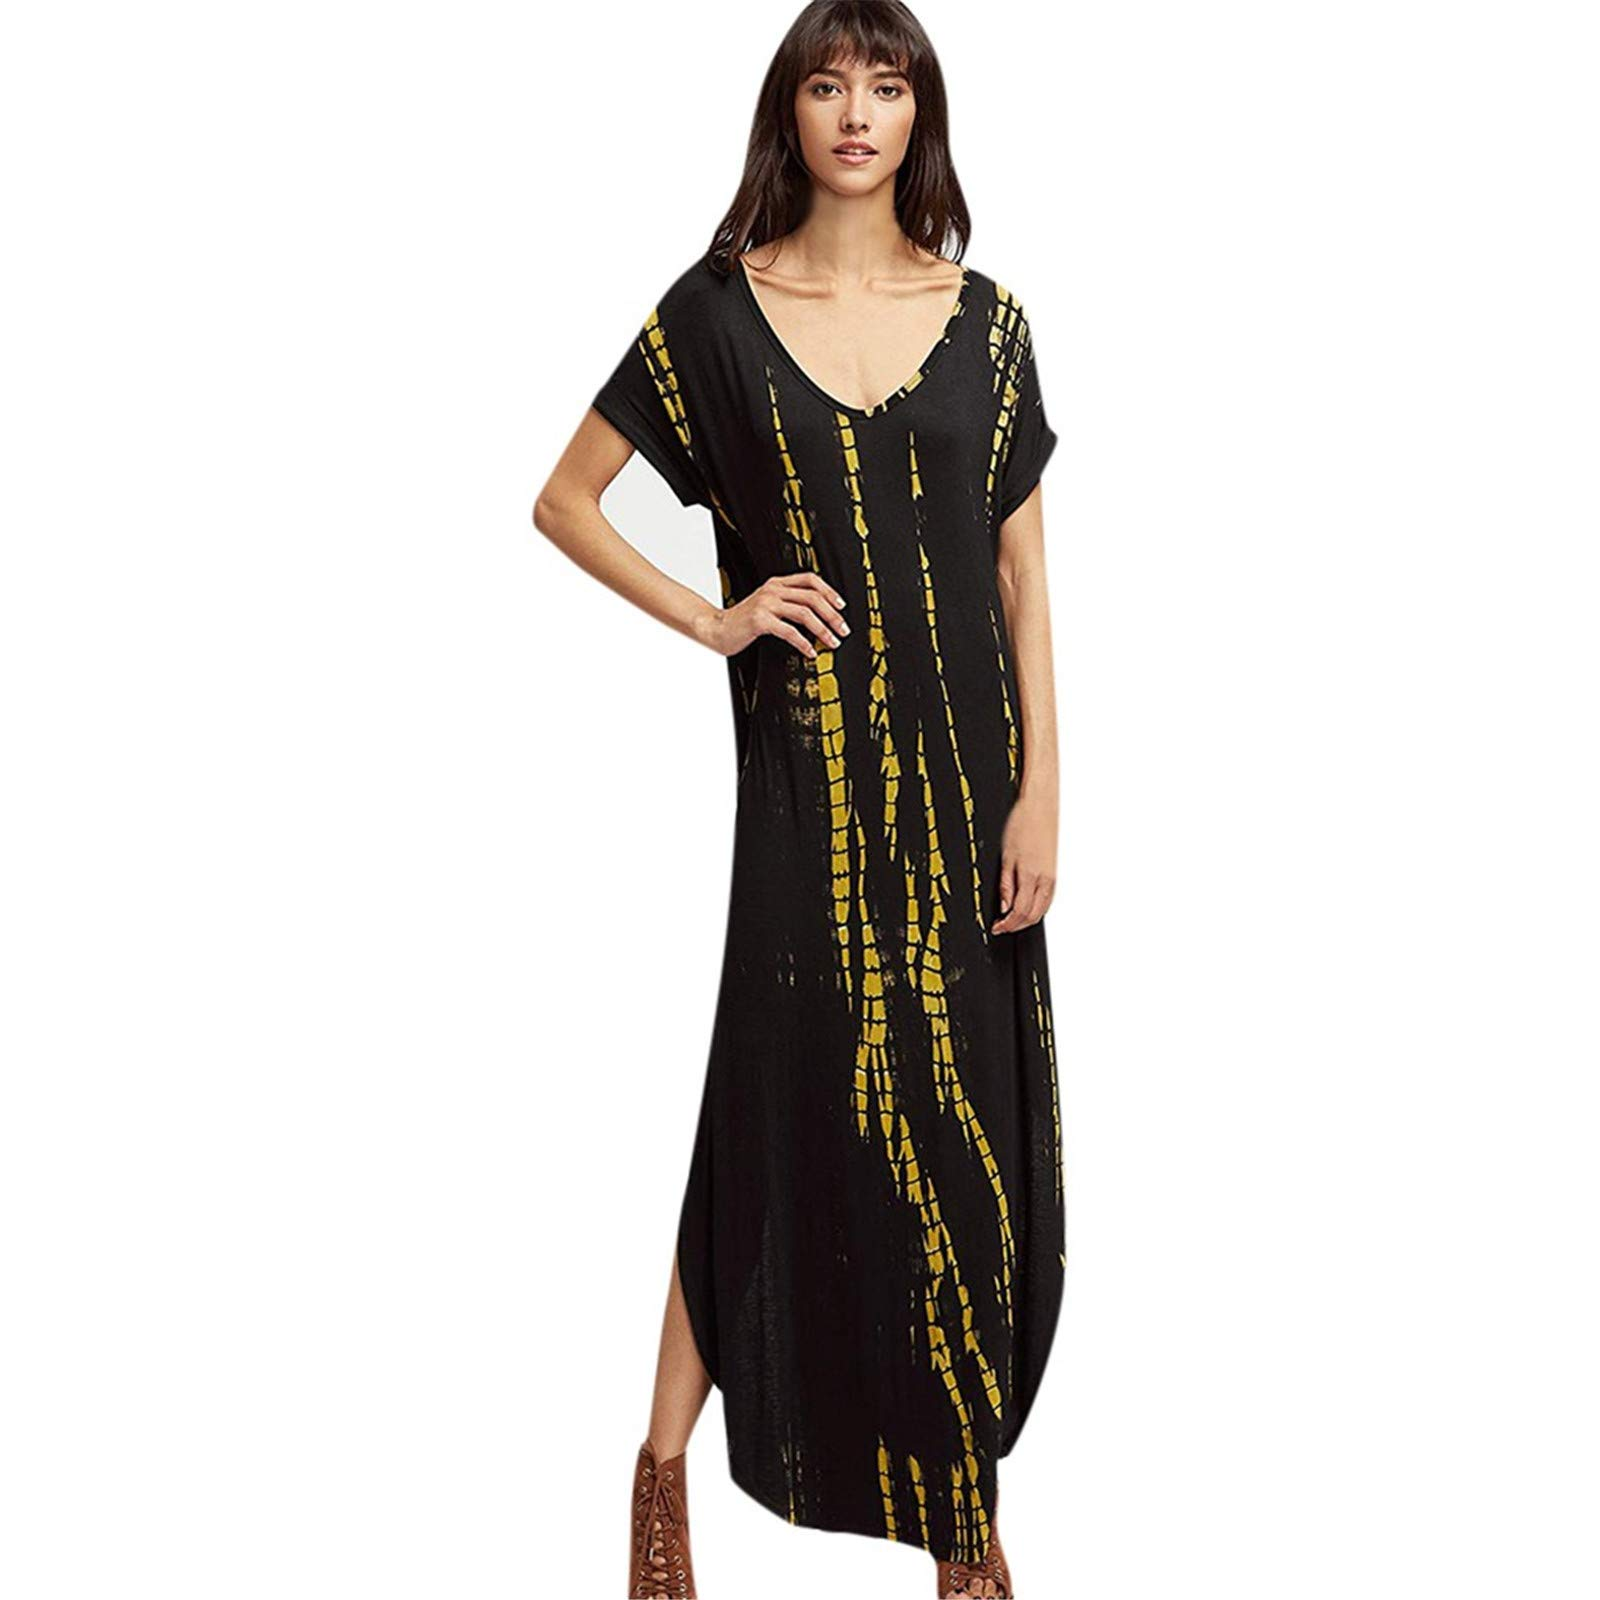 BAOHOKE Fashion Tie-Dye Print Short Sleeve Low Cut Maxi Dresses,Casual V Neck Slit Pocket Long Women's Dress(Black,L)